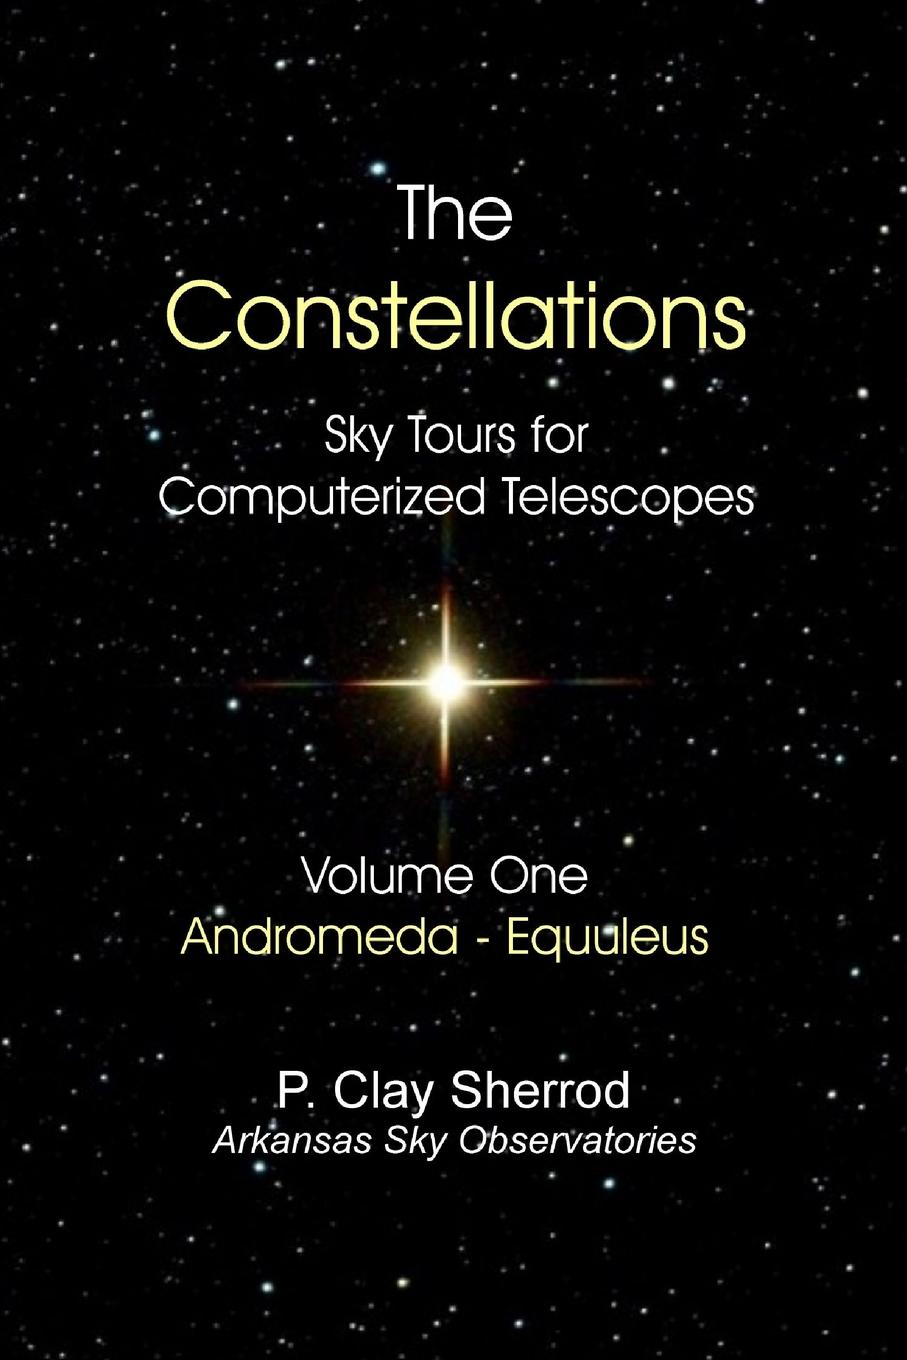 Clay Sherrod The Constellations - Sky Tours for Computerized TelescopesVol. One